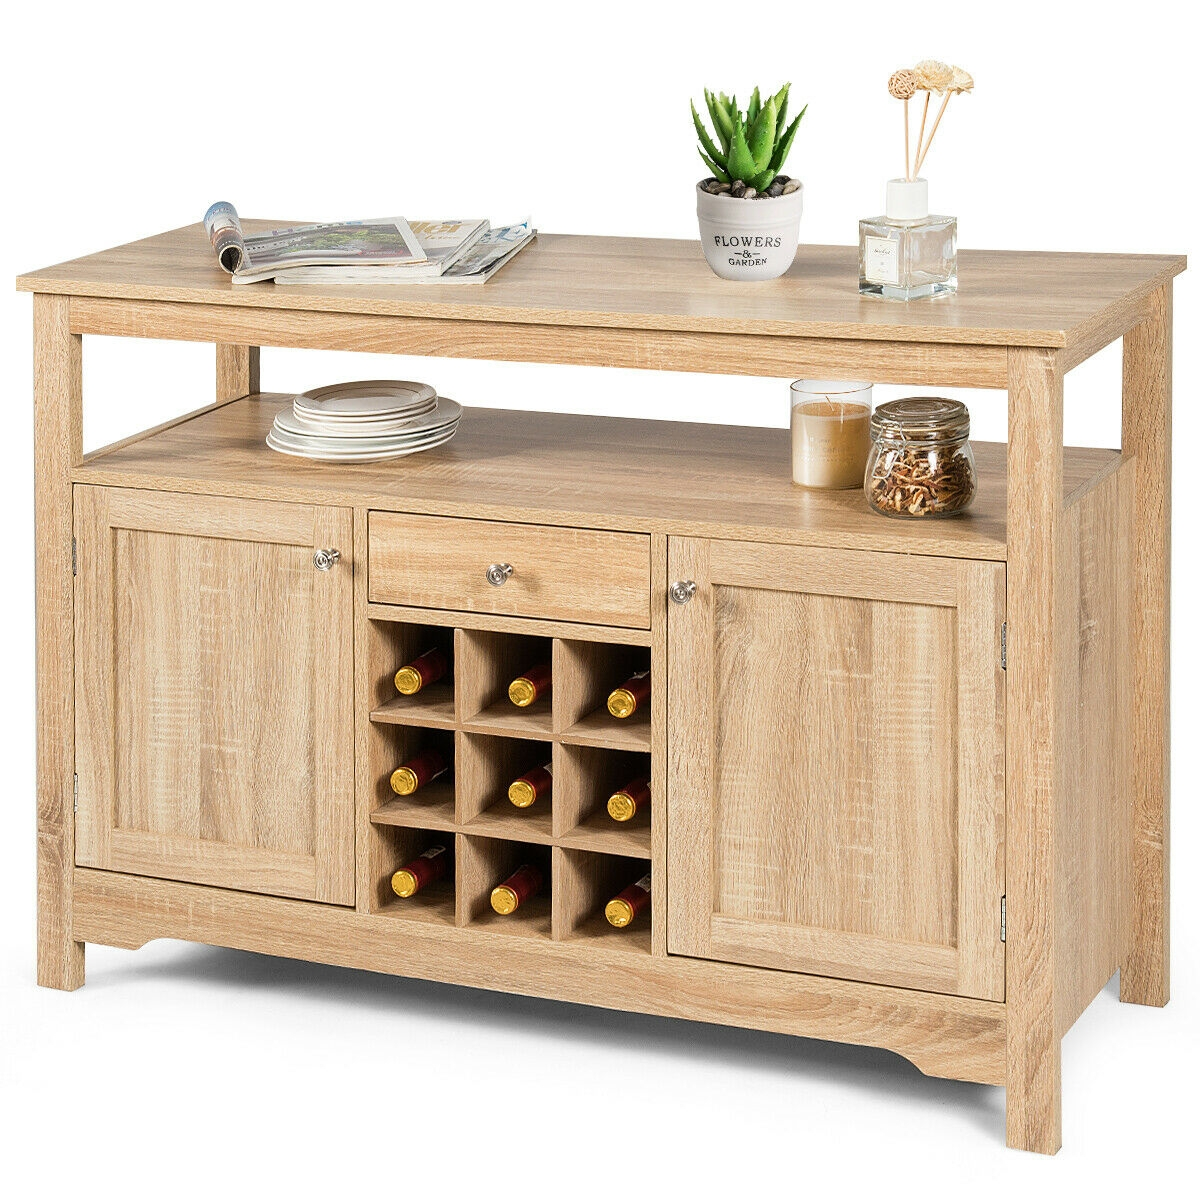 HOMECHO Wine Bar Storage Cabinet Wood Kitchen Buffet Server with 20-Bottle Display Rack Holder and Glass Hooks White Liquor Cupboard Sideboard Table Modern Dining Room Furniture